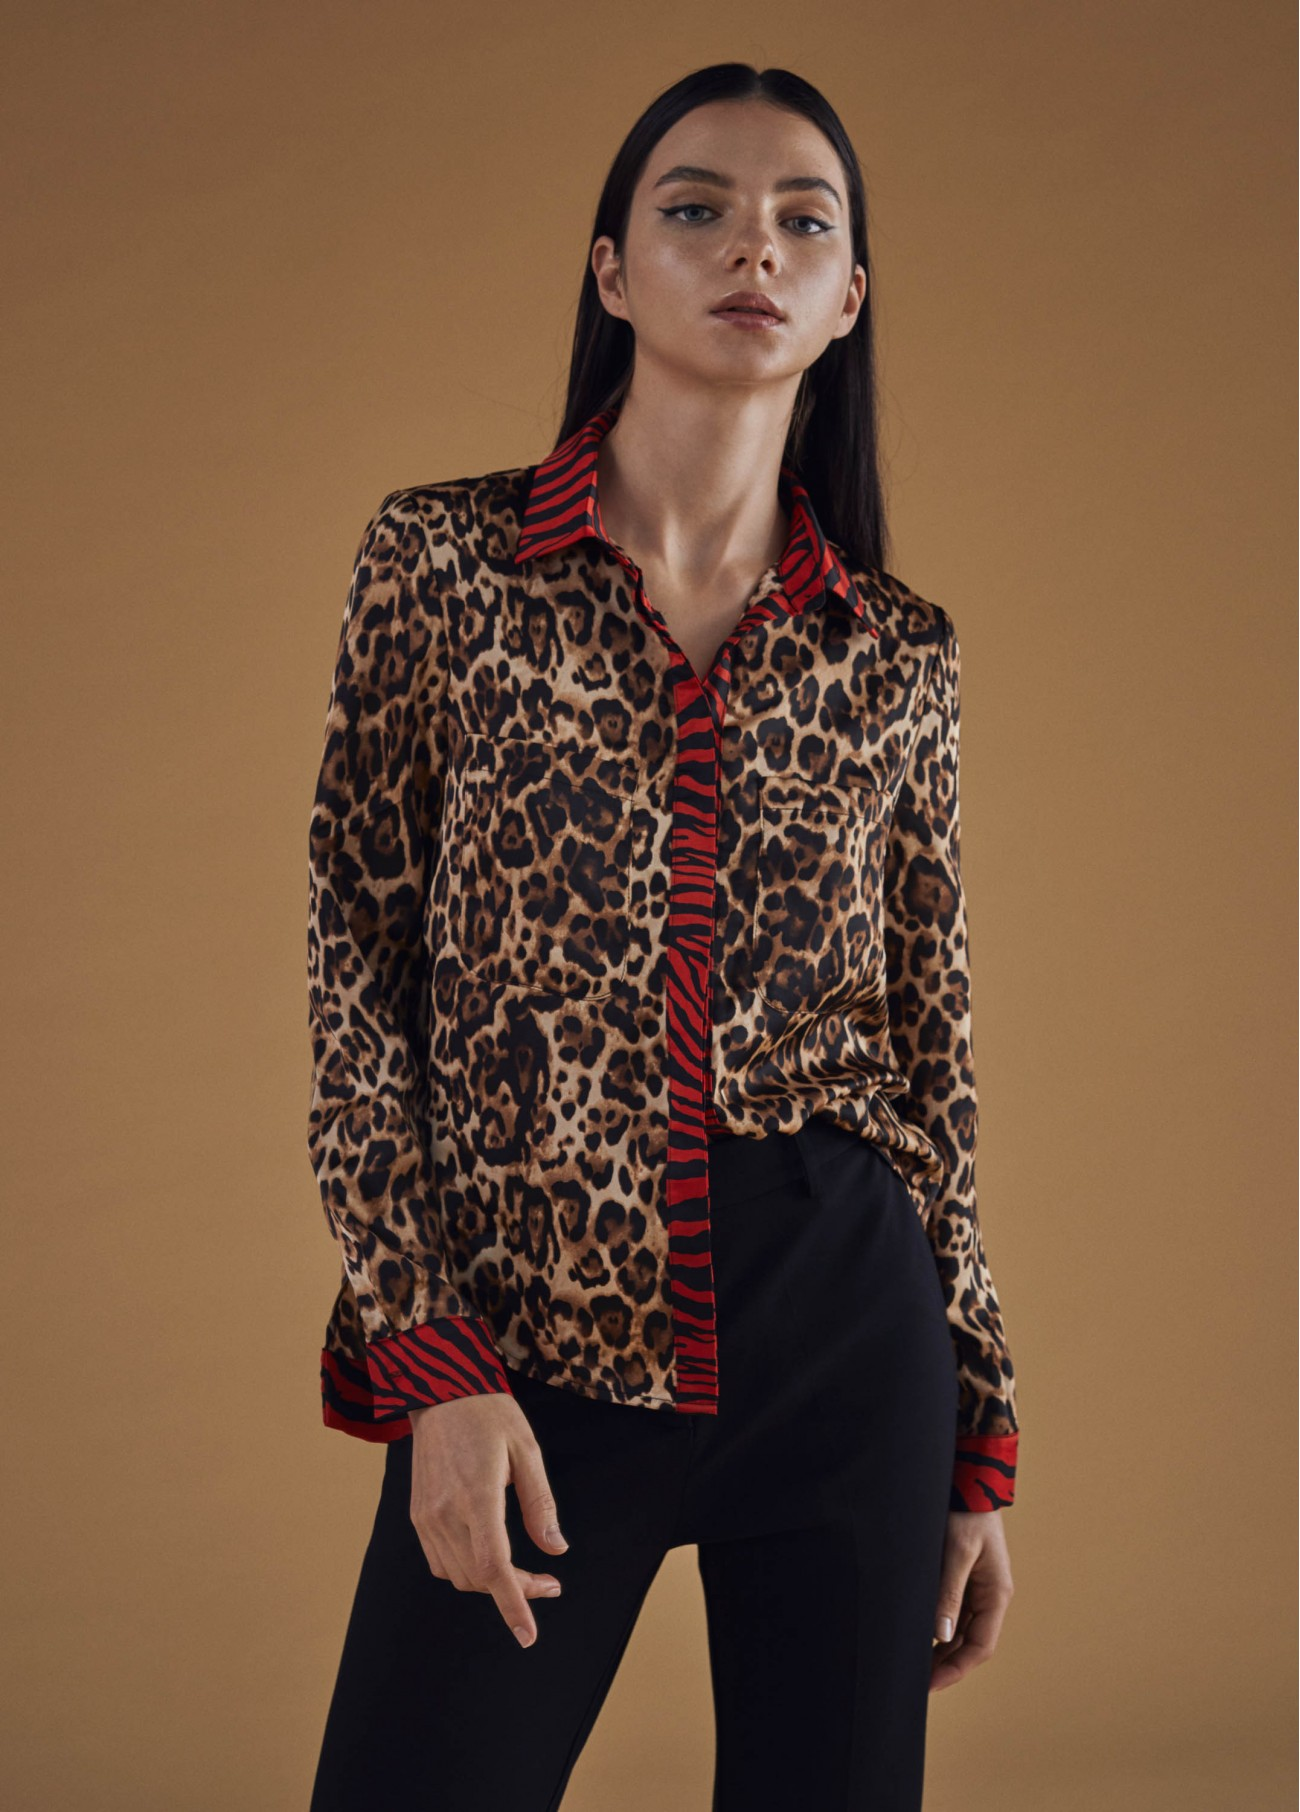 Blusa estampado animal print, camel 2